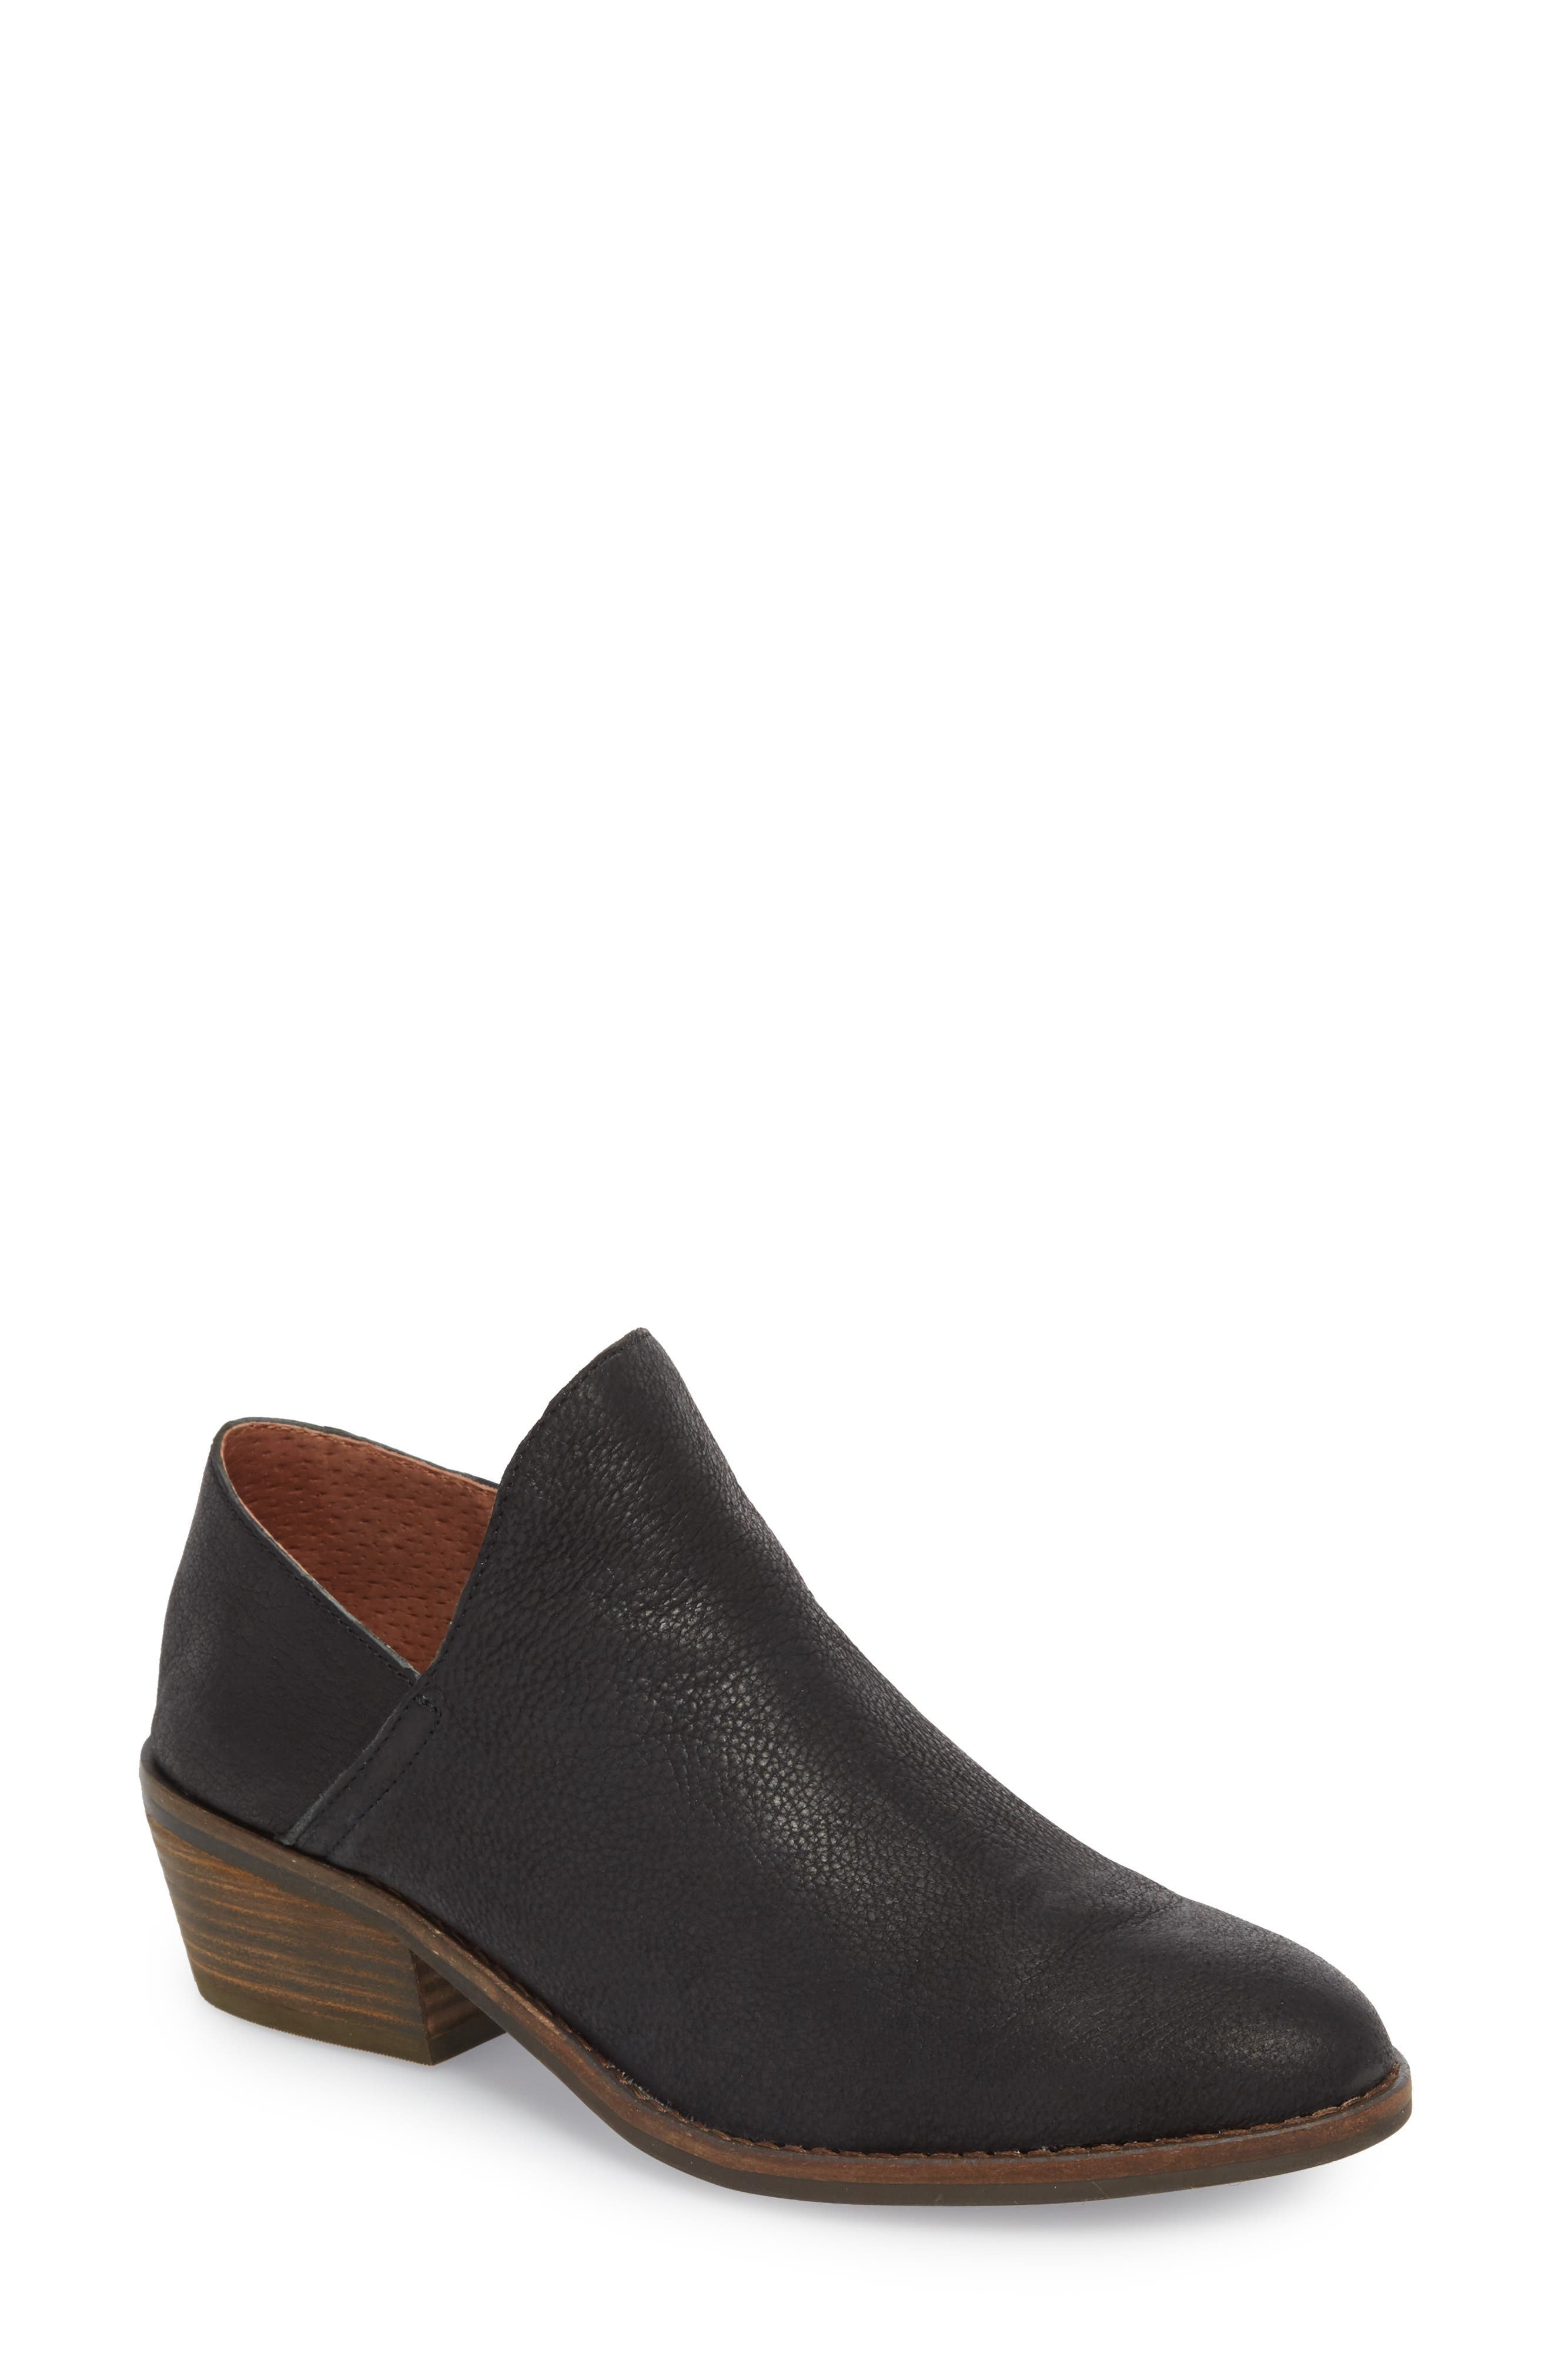 LUCKY BRAND Fausst Bootie, Main, color, 001